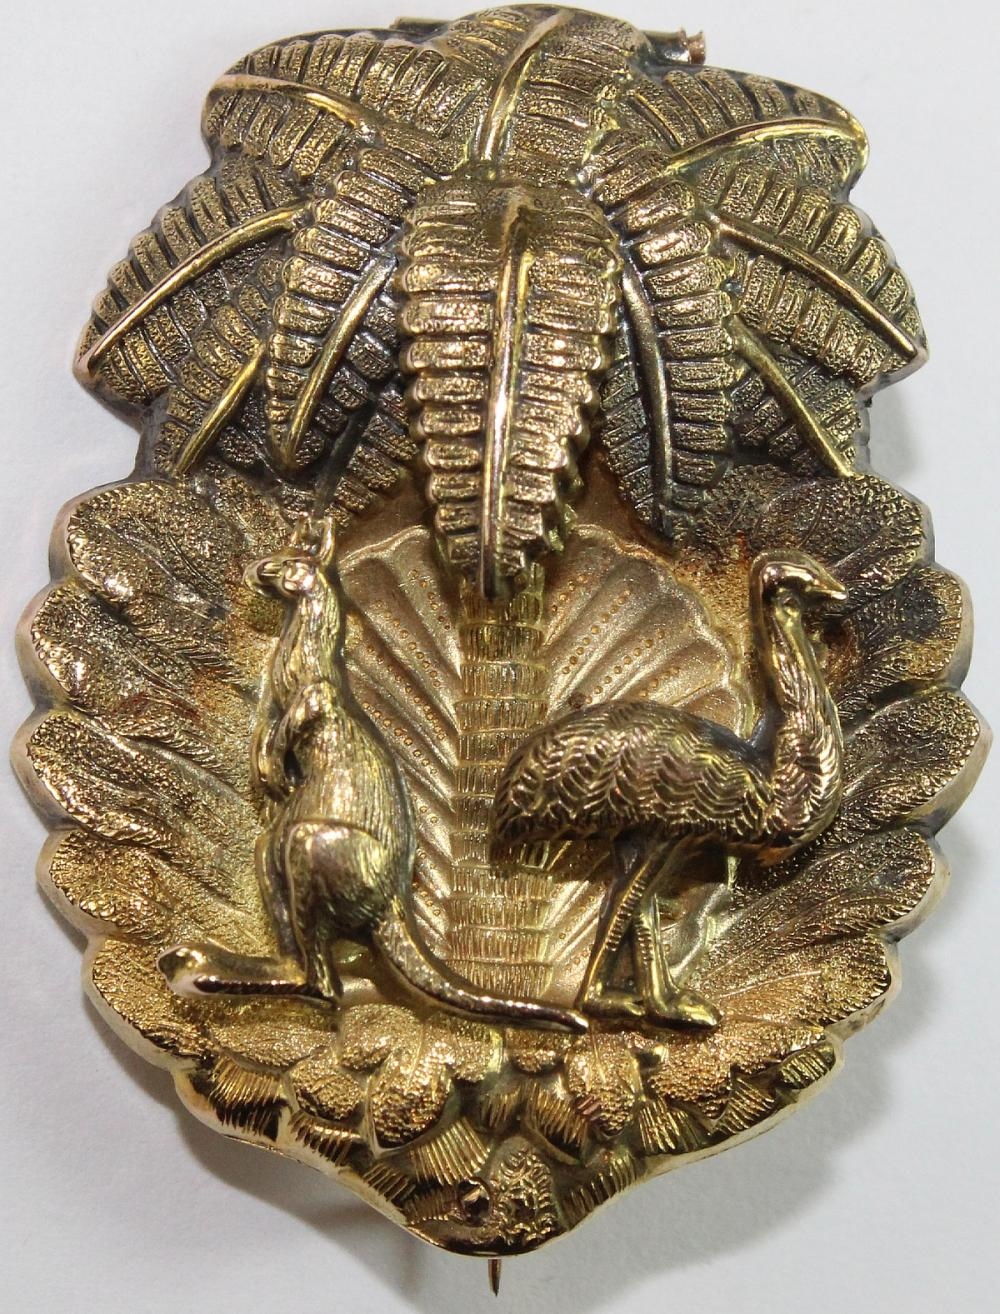 Australian 19th Century Gold Brooch in 18ct Gold featuring a 'Kangaroo & Emu' beneath a Palm Frond